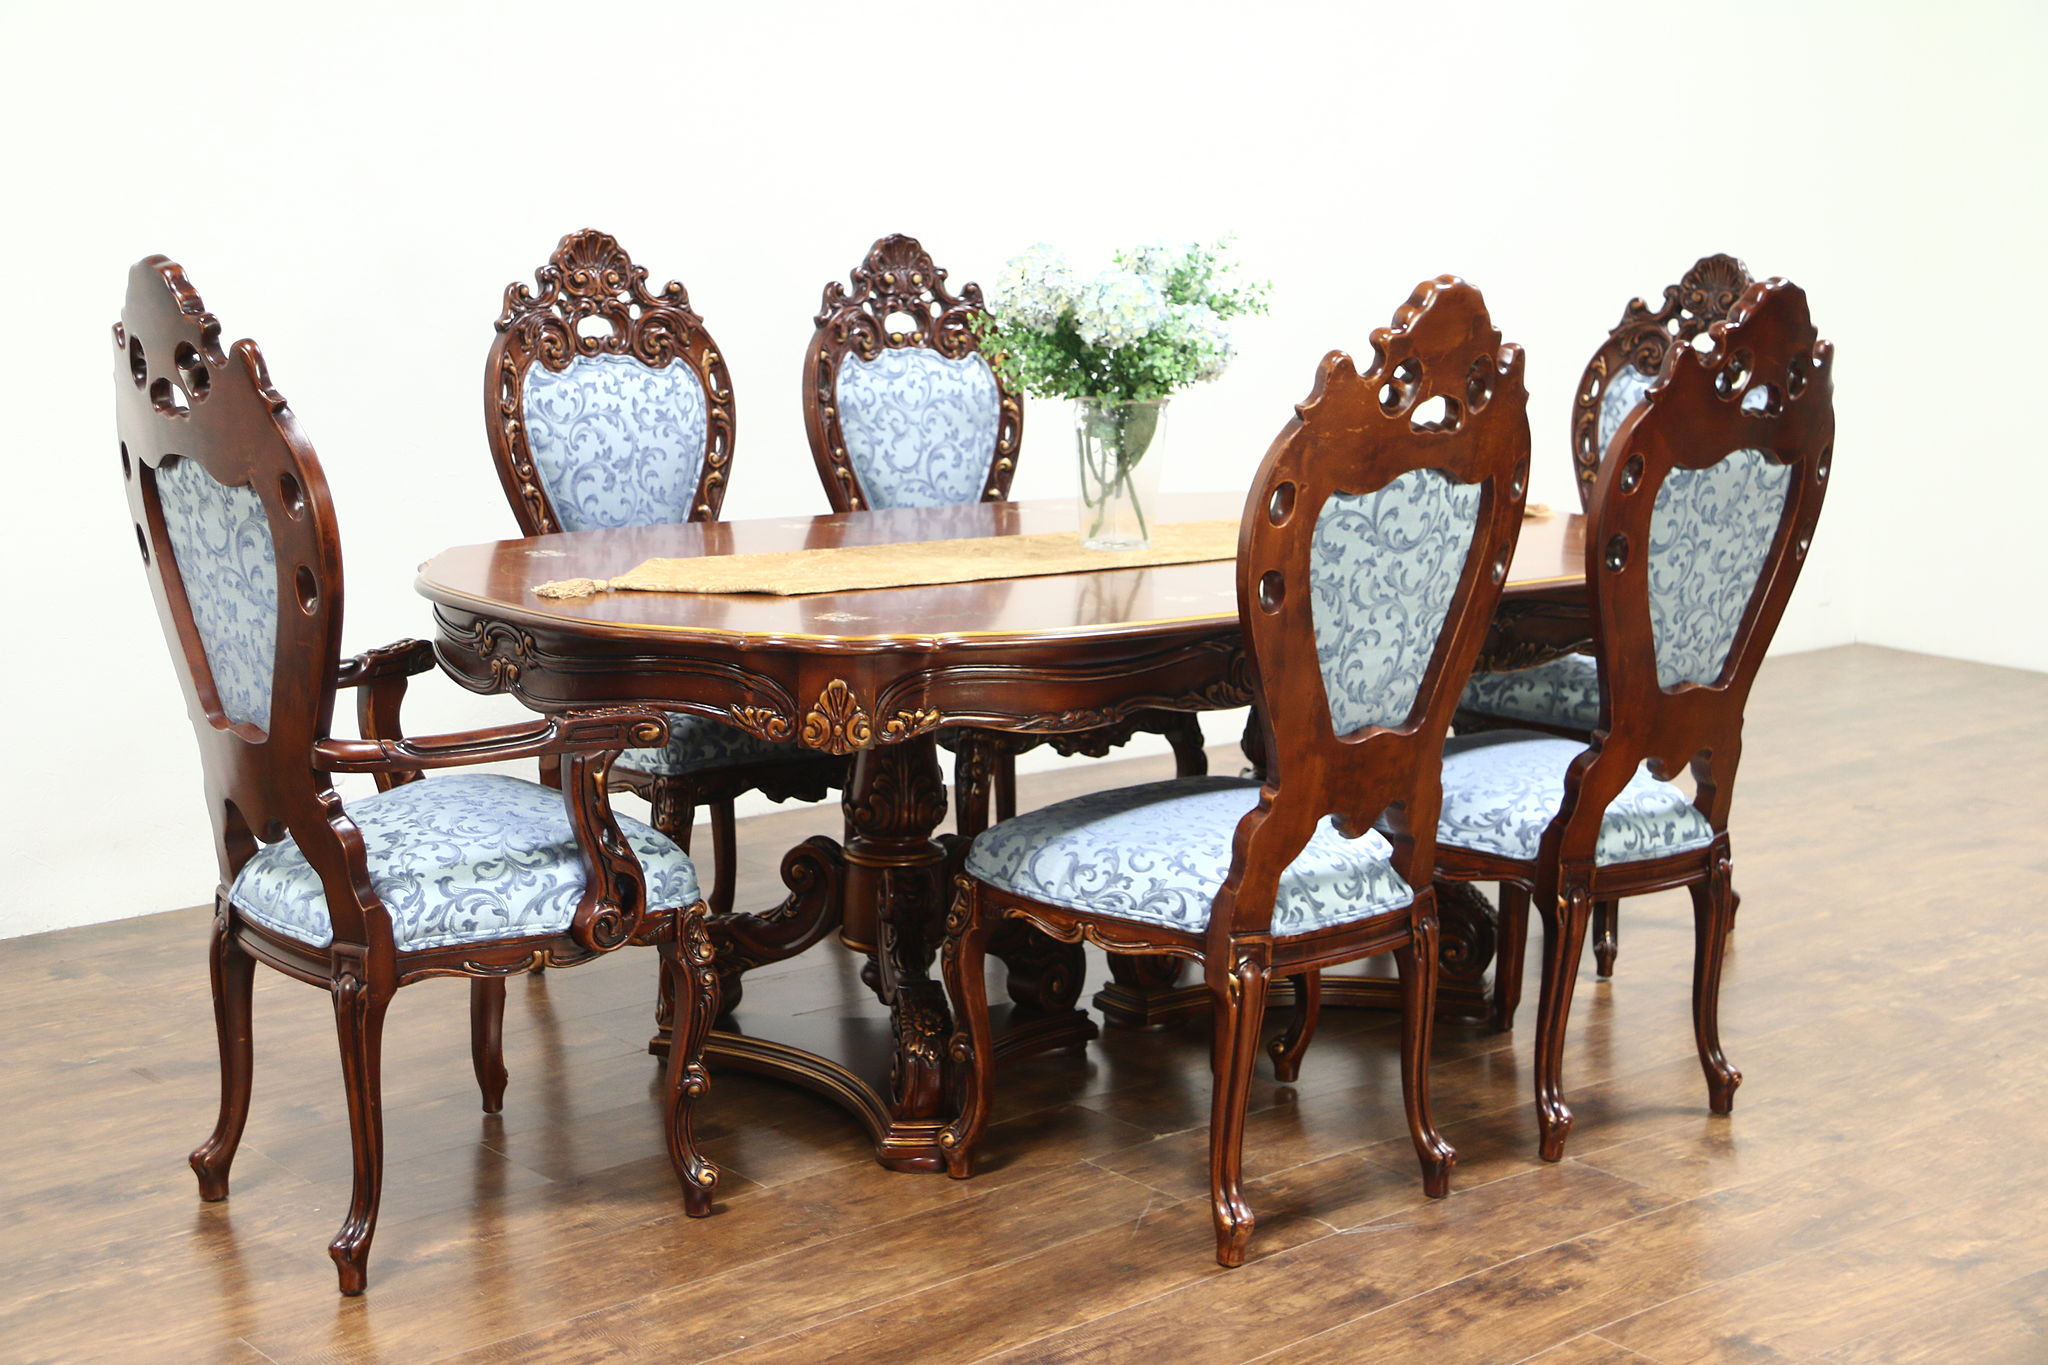 Baroque Carved Cherry Vintage Dining Set, Table, 6 Chairs, Signed Montalban  ...